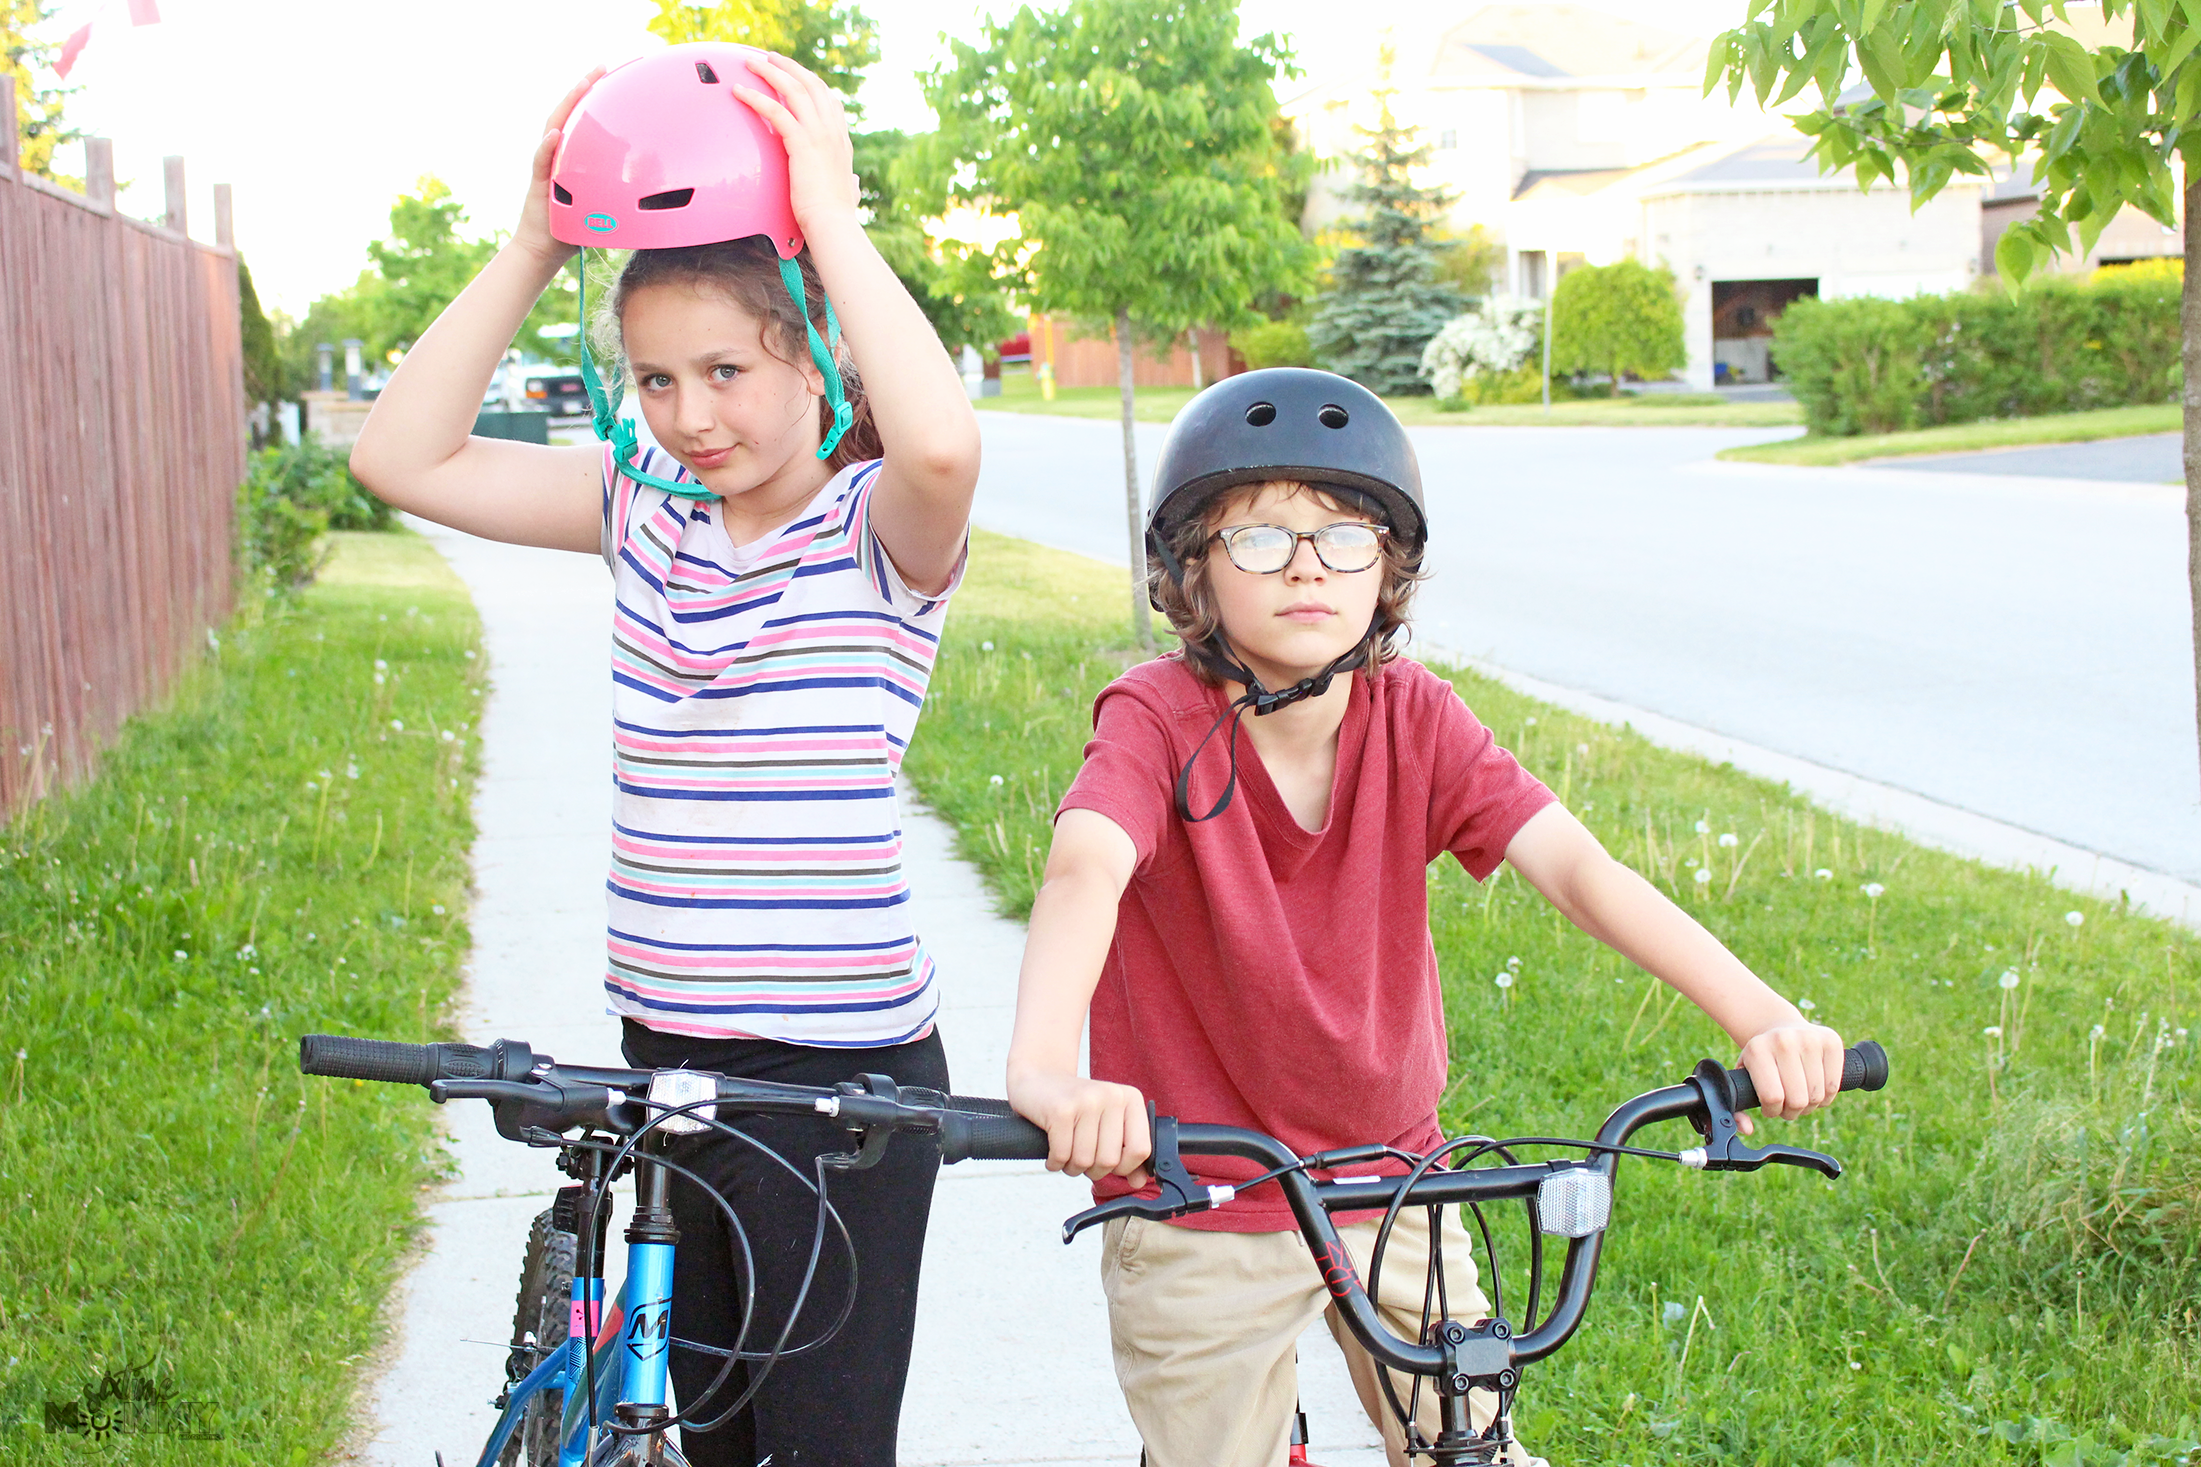 Summer Bicycle Riding Safety Tips for Younger Kids (13 and younger)